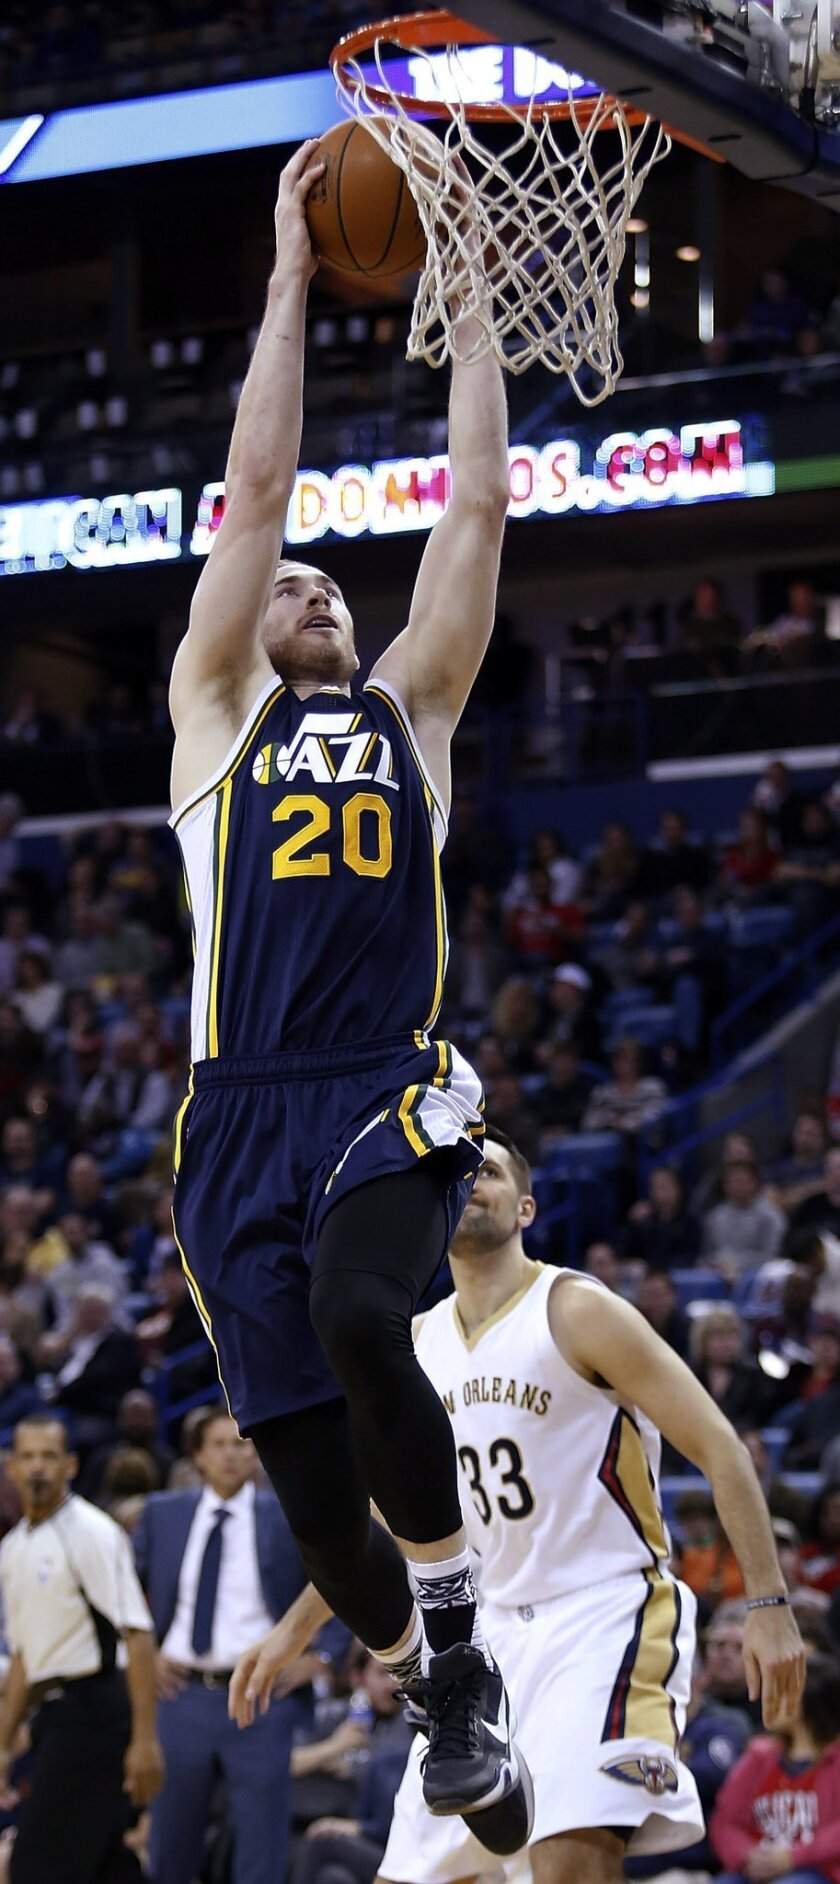 Utah Jazz forward Gordon Hayward (2) dunks during the second half of the team's NBA basketball game against the New Orleans Pelicans in New Orleans, Wednesday, Feb. 10, 2016. The Pelicans won 100-96. (AP Photo/Tyler Kaufman)